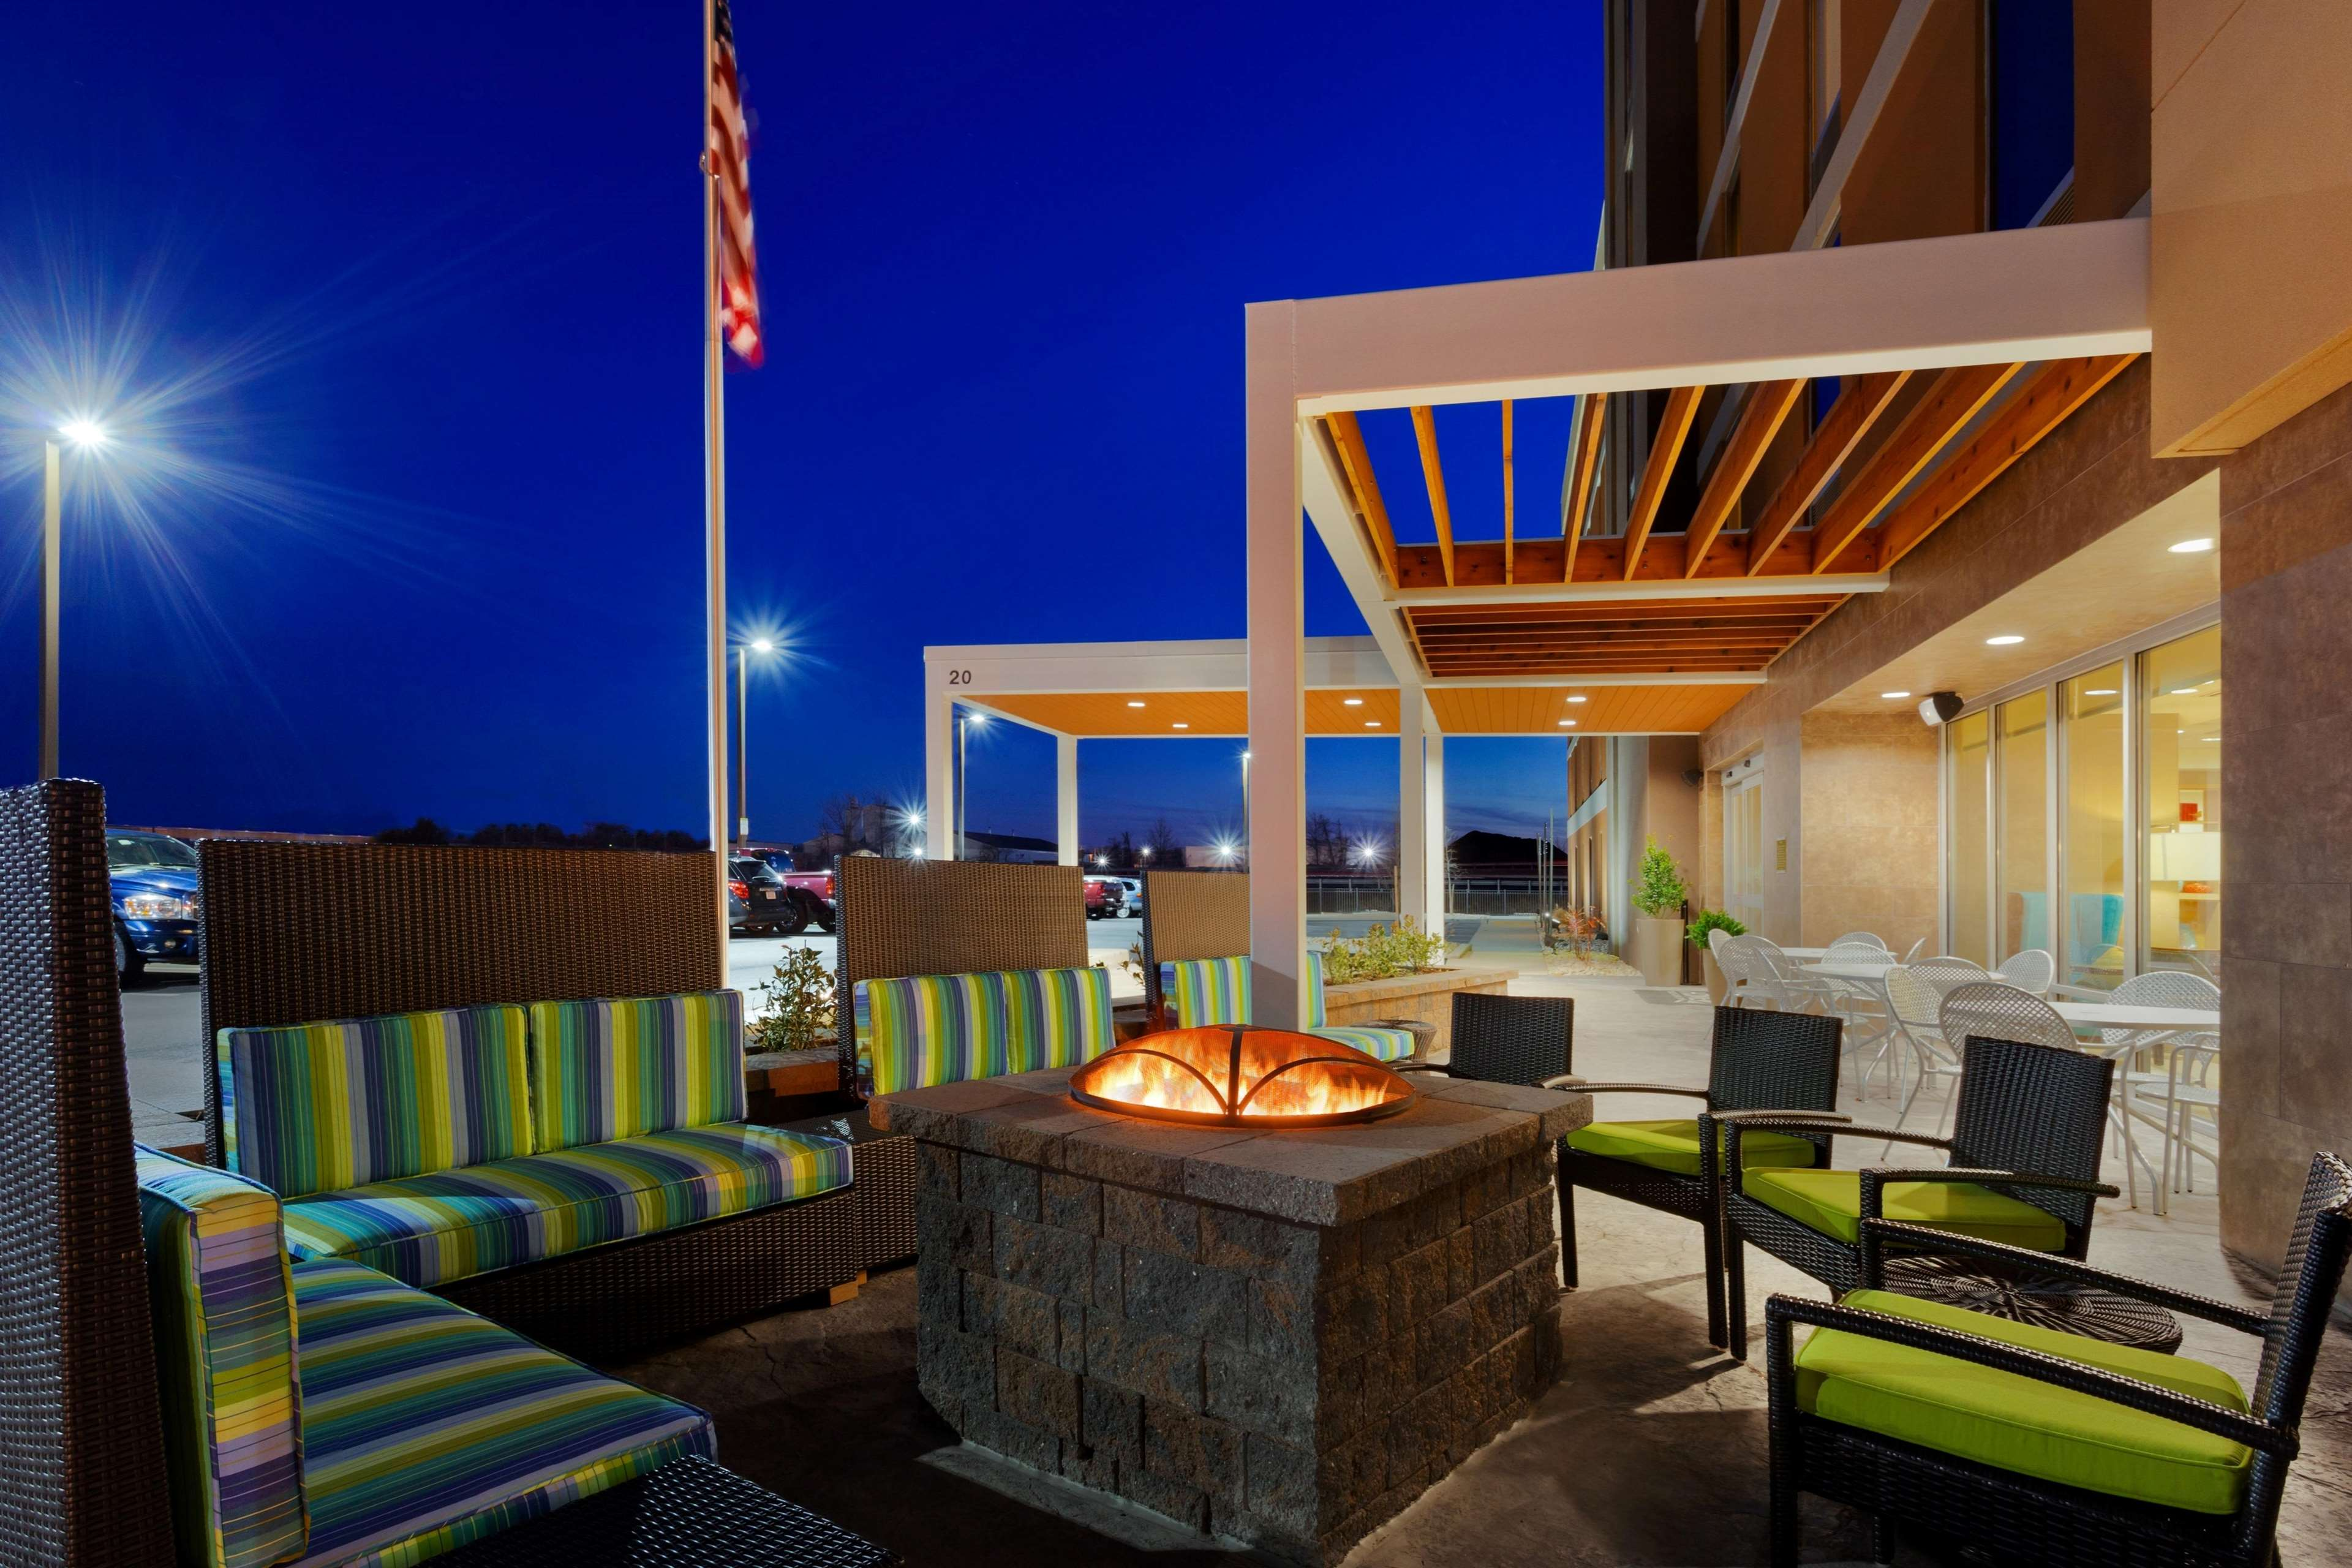 Home2 Suites by Hilton Baltimore / Aberdeen, MD image 19